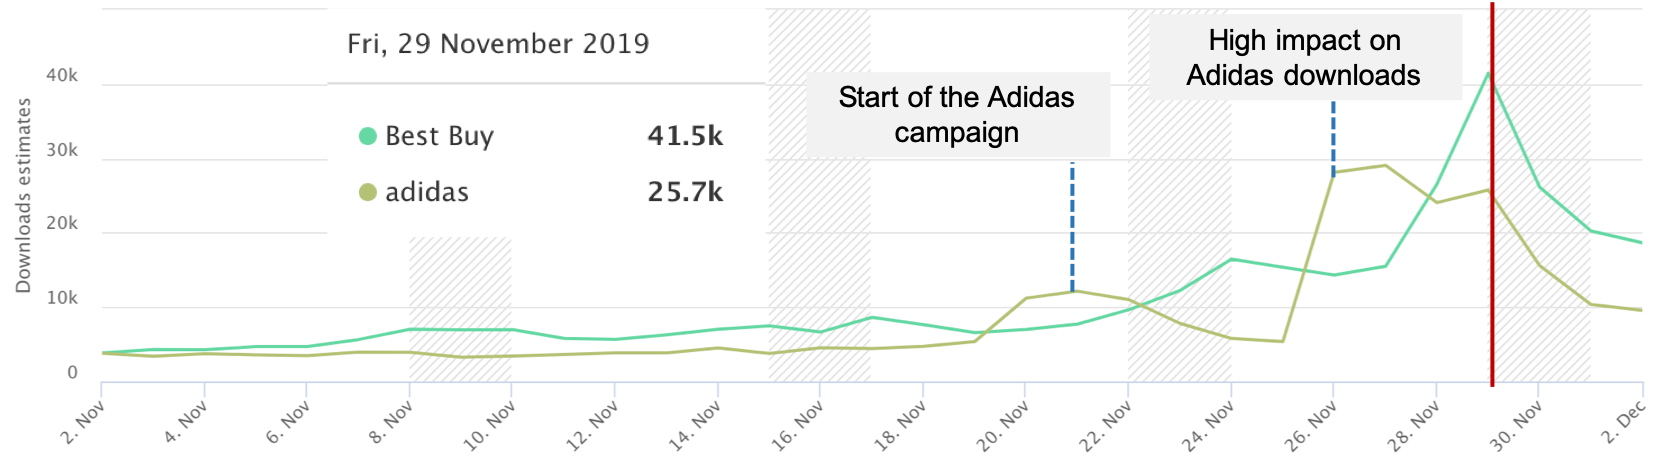 AppTweak ASO Tool - Downloads estimates of Best Buy and Adidas in November 2019 (IOS, US)